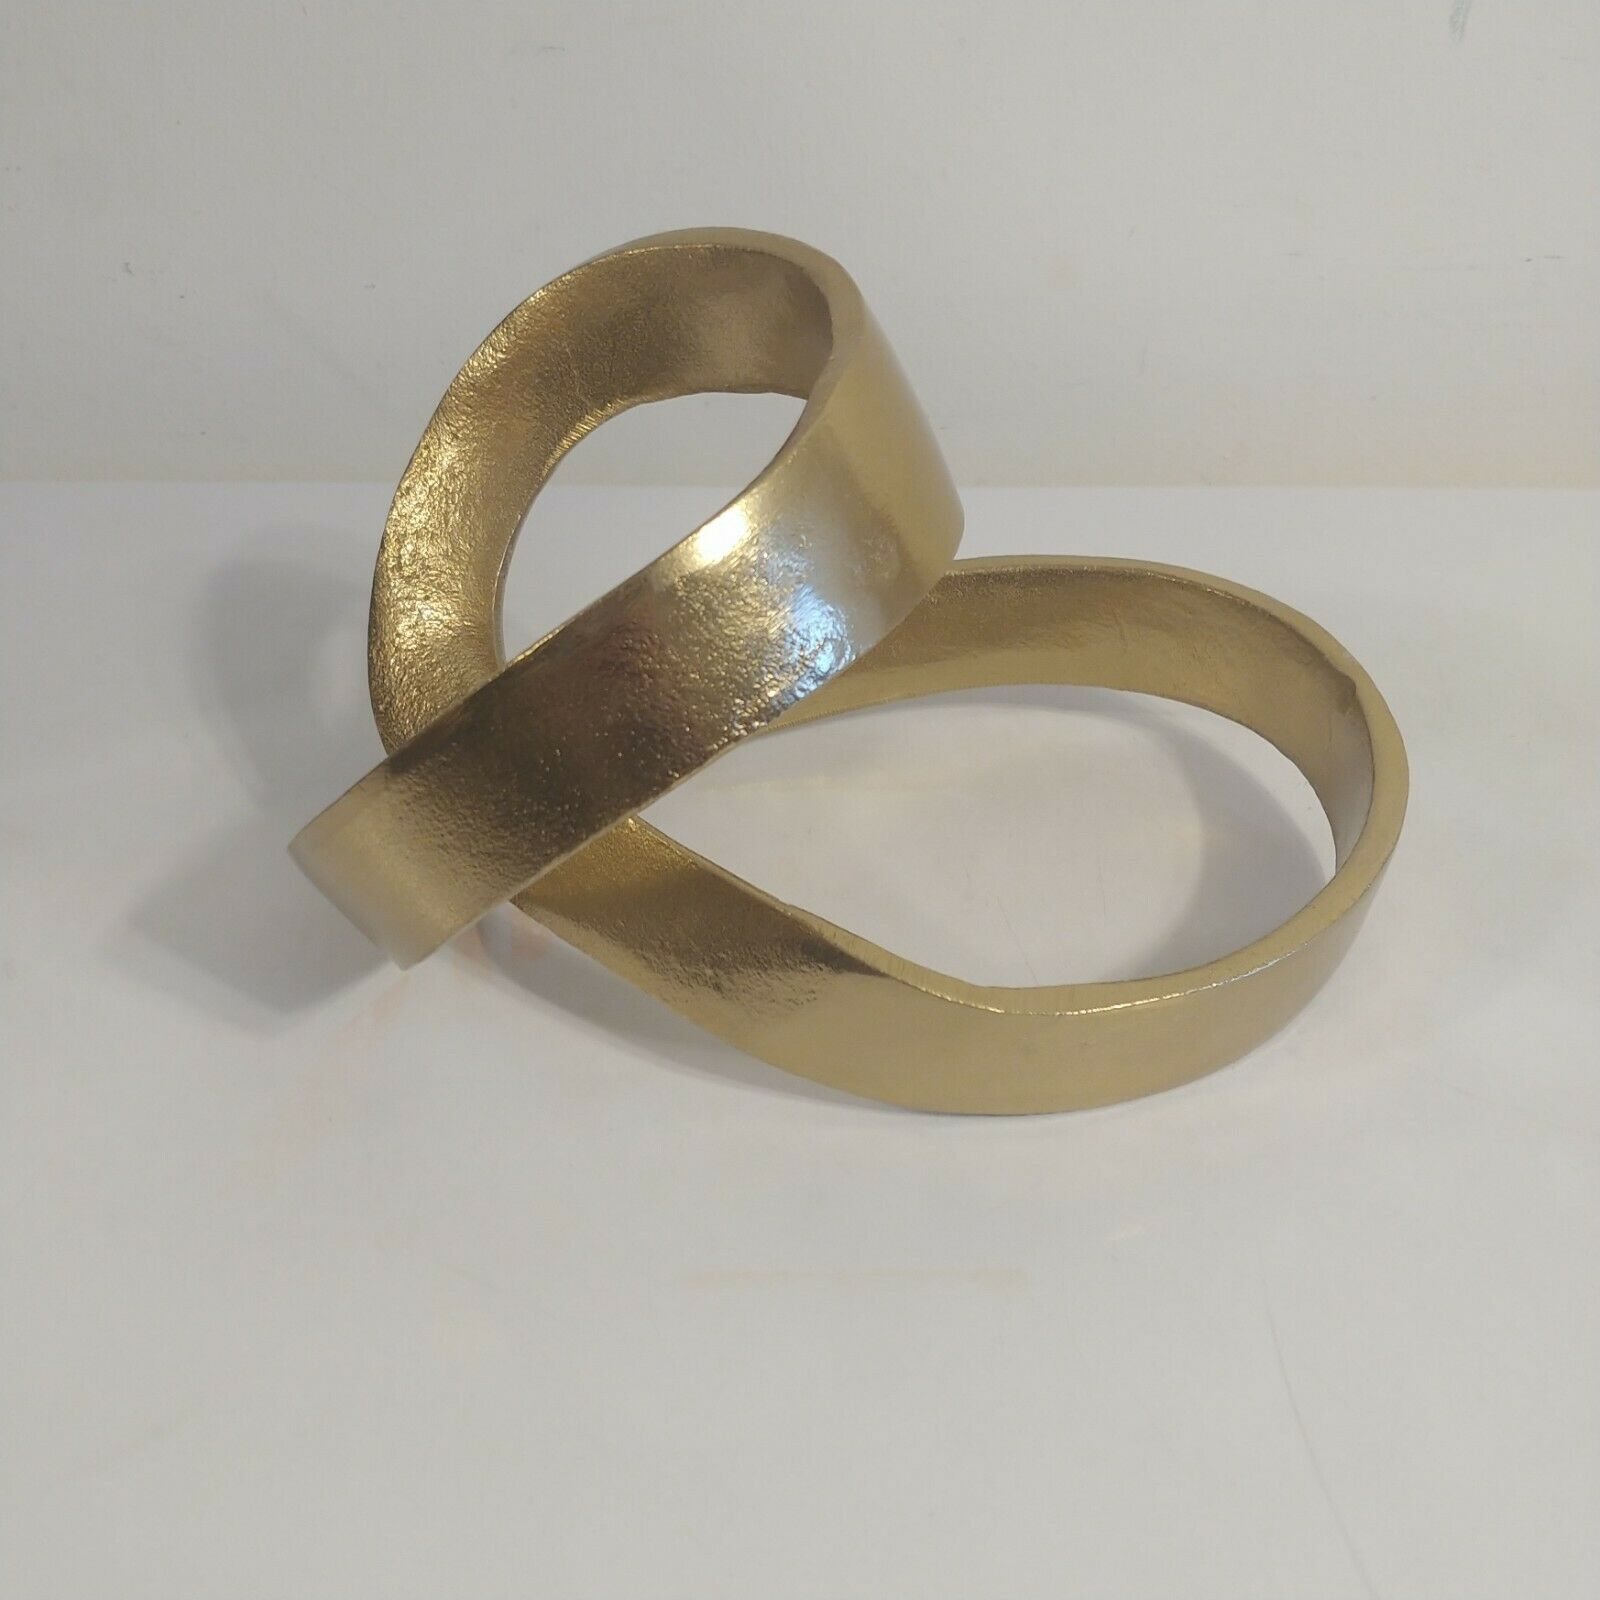 NWT Studio McGee X Threshold Decorative Brass Figurine Gold Target SOLD OUT NEW